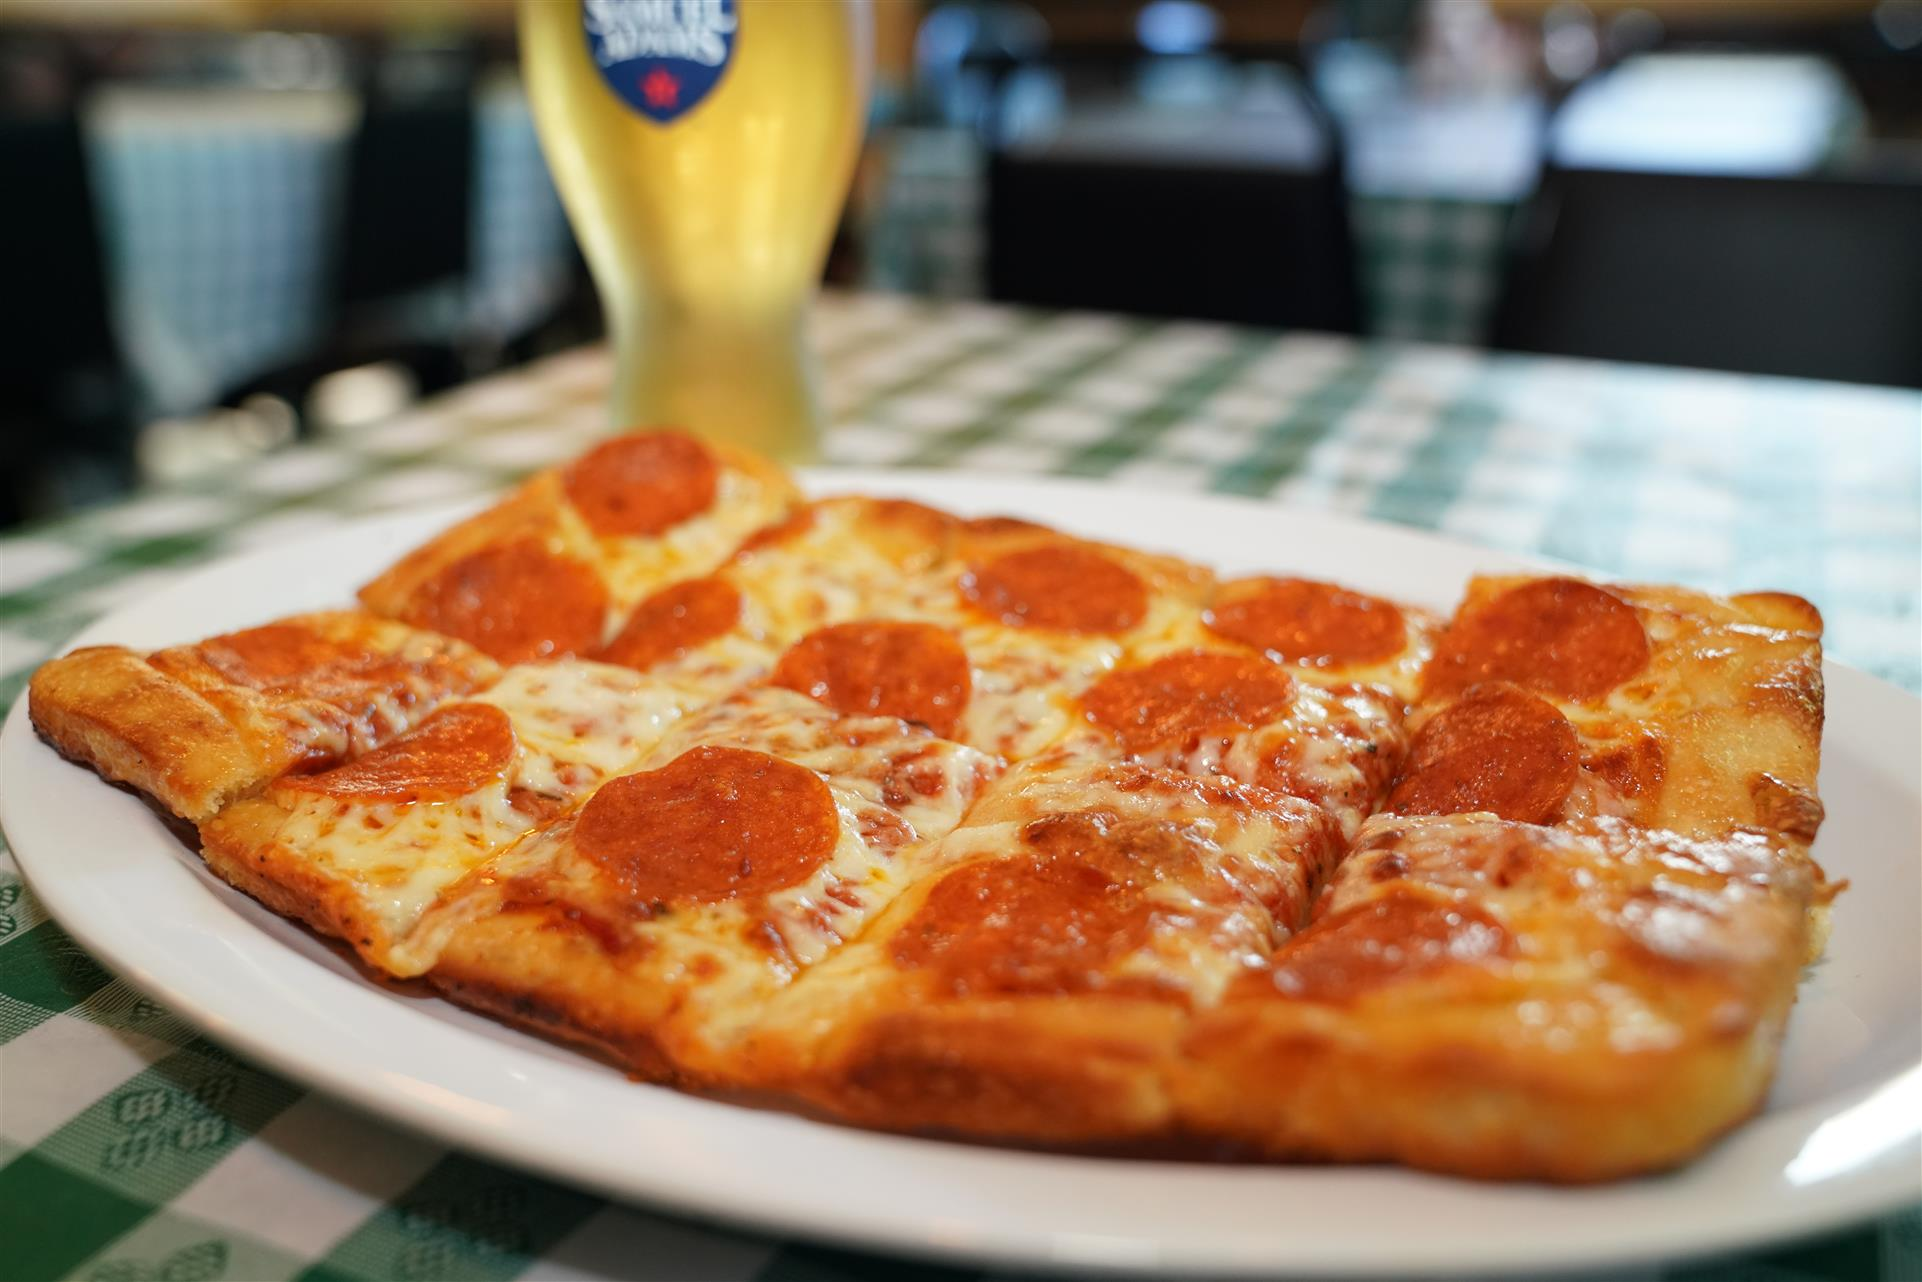 pizza with pepperoni and a beer on the side